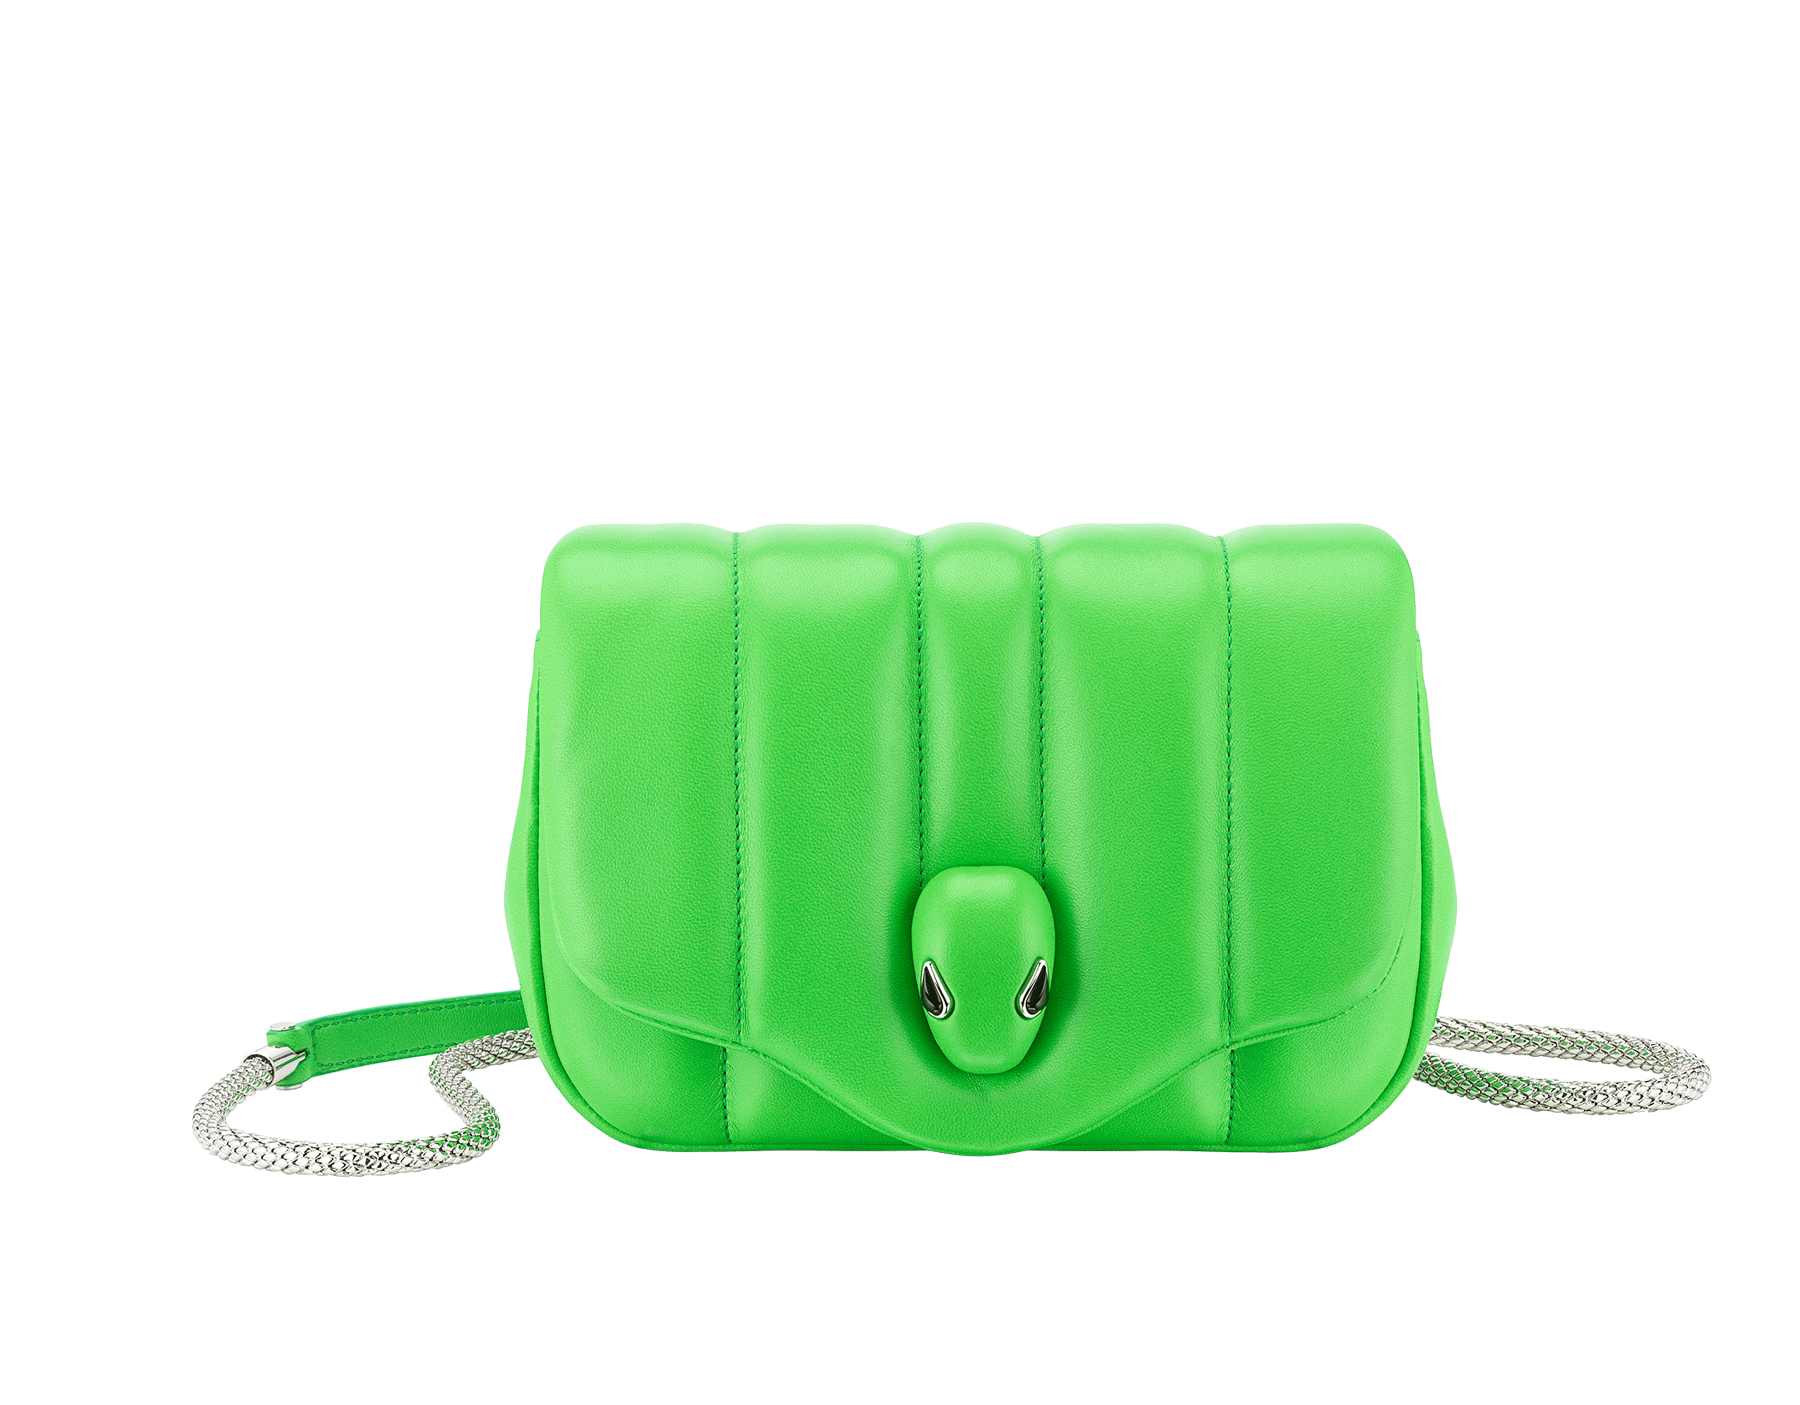 """Ambush x Bvlgari"" belt bag in bright green nappa leather. New Serpenti head closure in palladium plated brass dressed with bright green nappa leather, finished with seductive black onyx eyes. Limited edition. 290351 image 1"